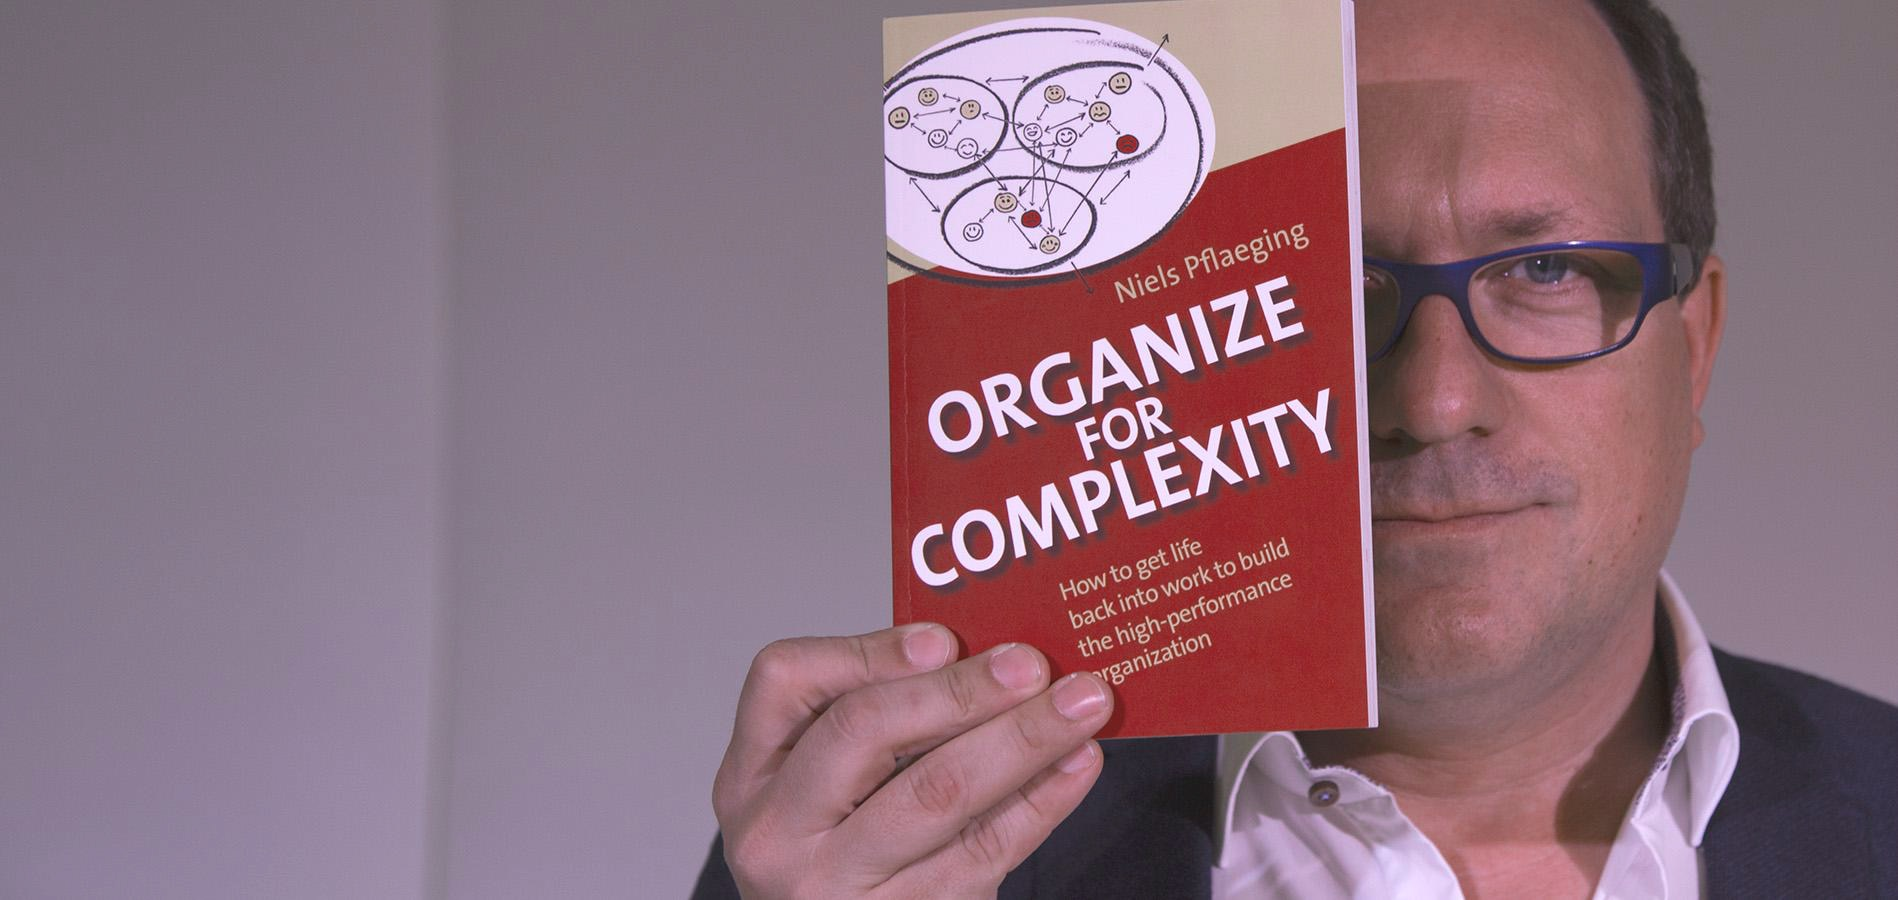 niels pflaeging organize for complexity management